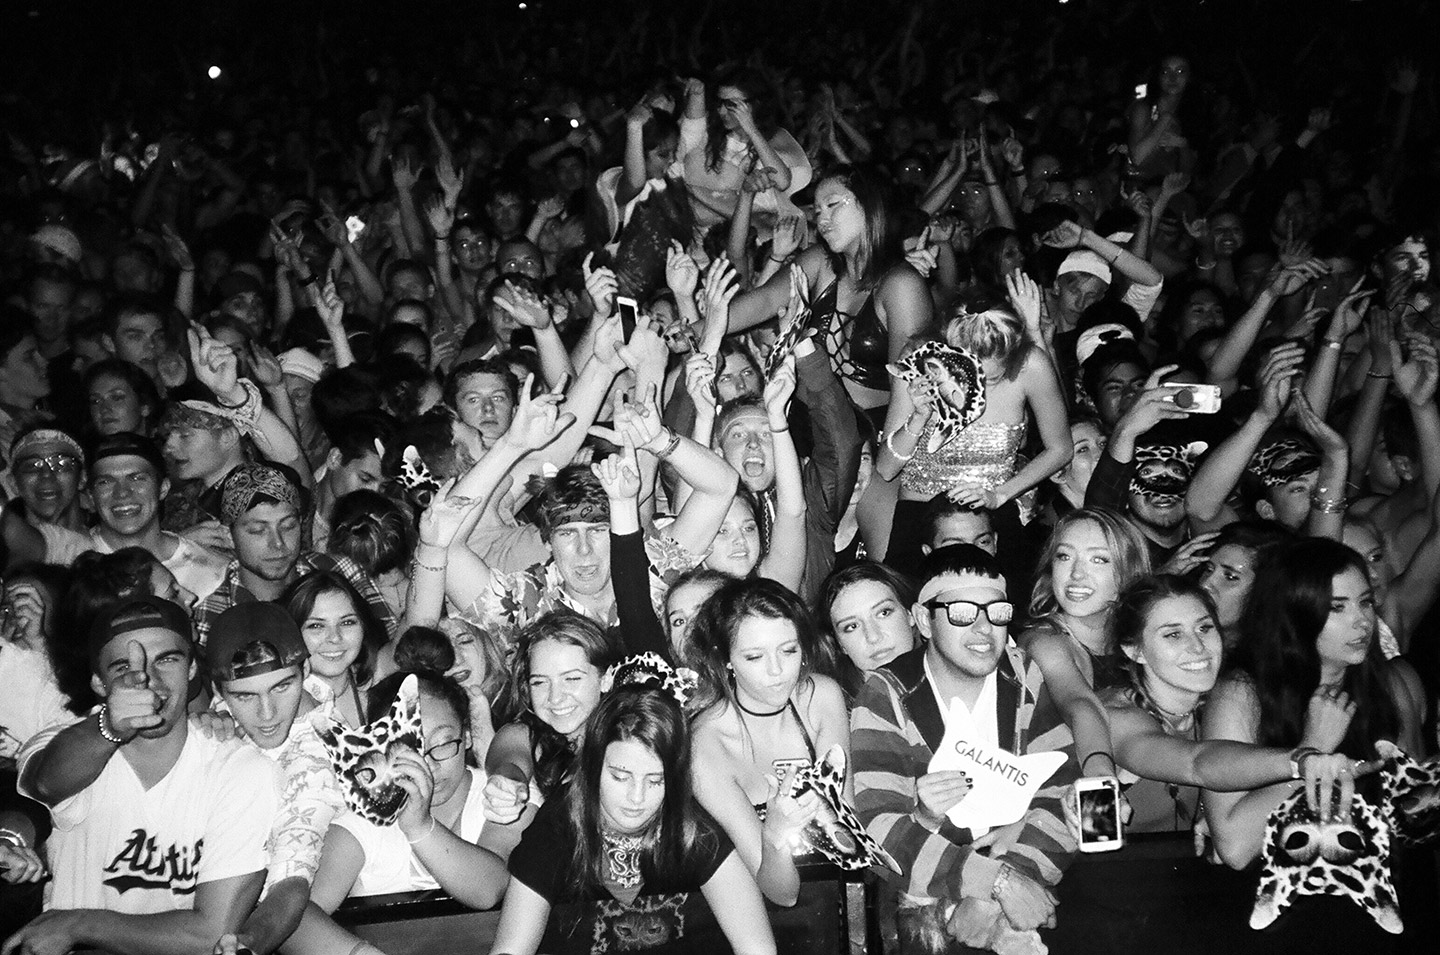 Crowd shot of Galantis fans. Behind the scenes of Galantis - Pillow Fight music video by mosss